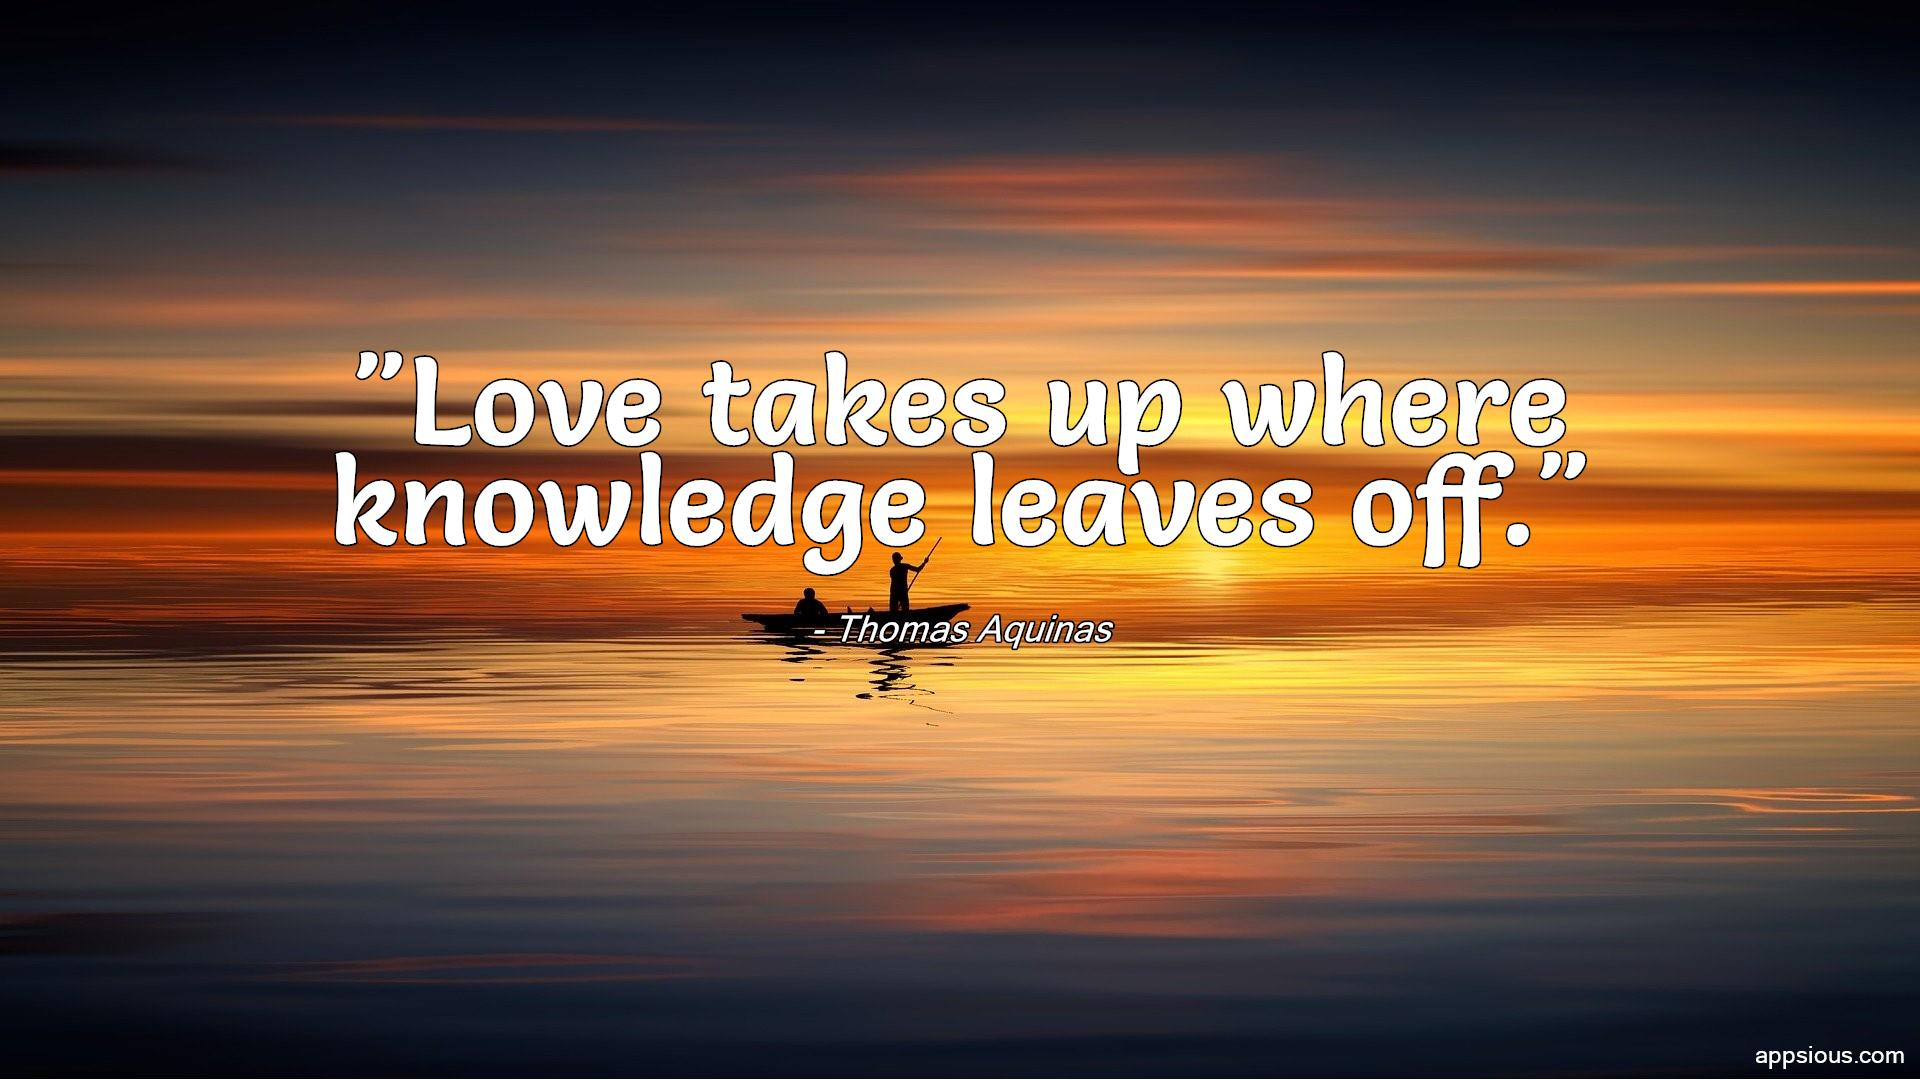 Love takes up where knowledge leaves off.